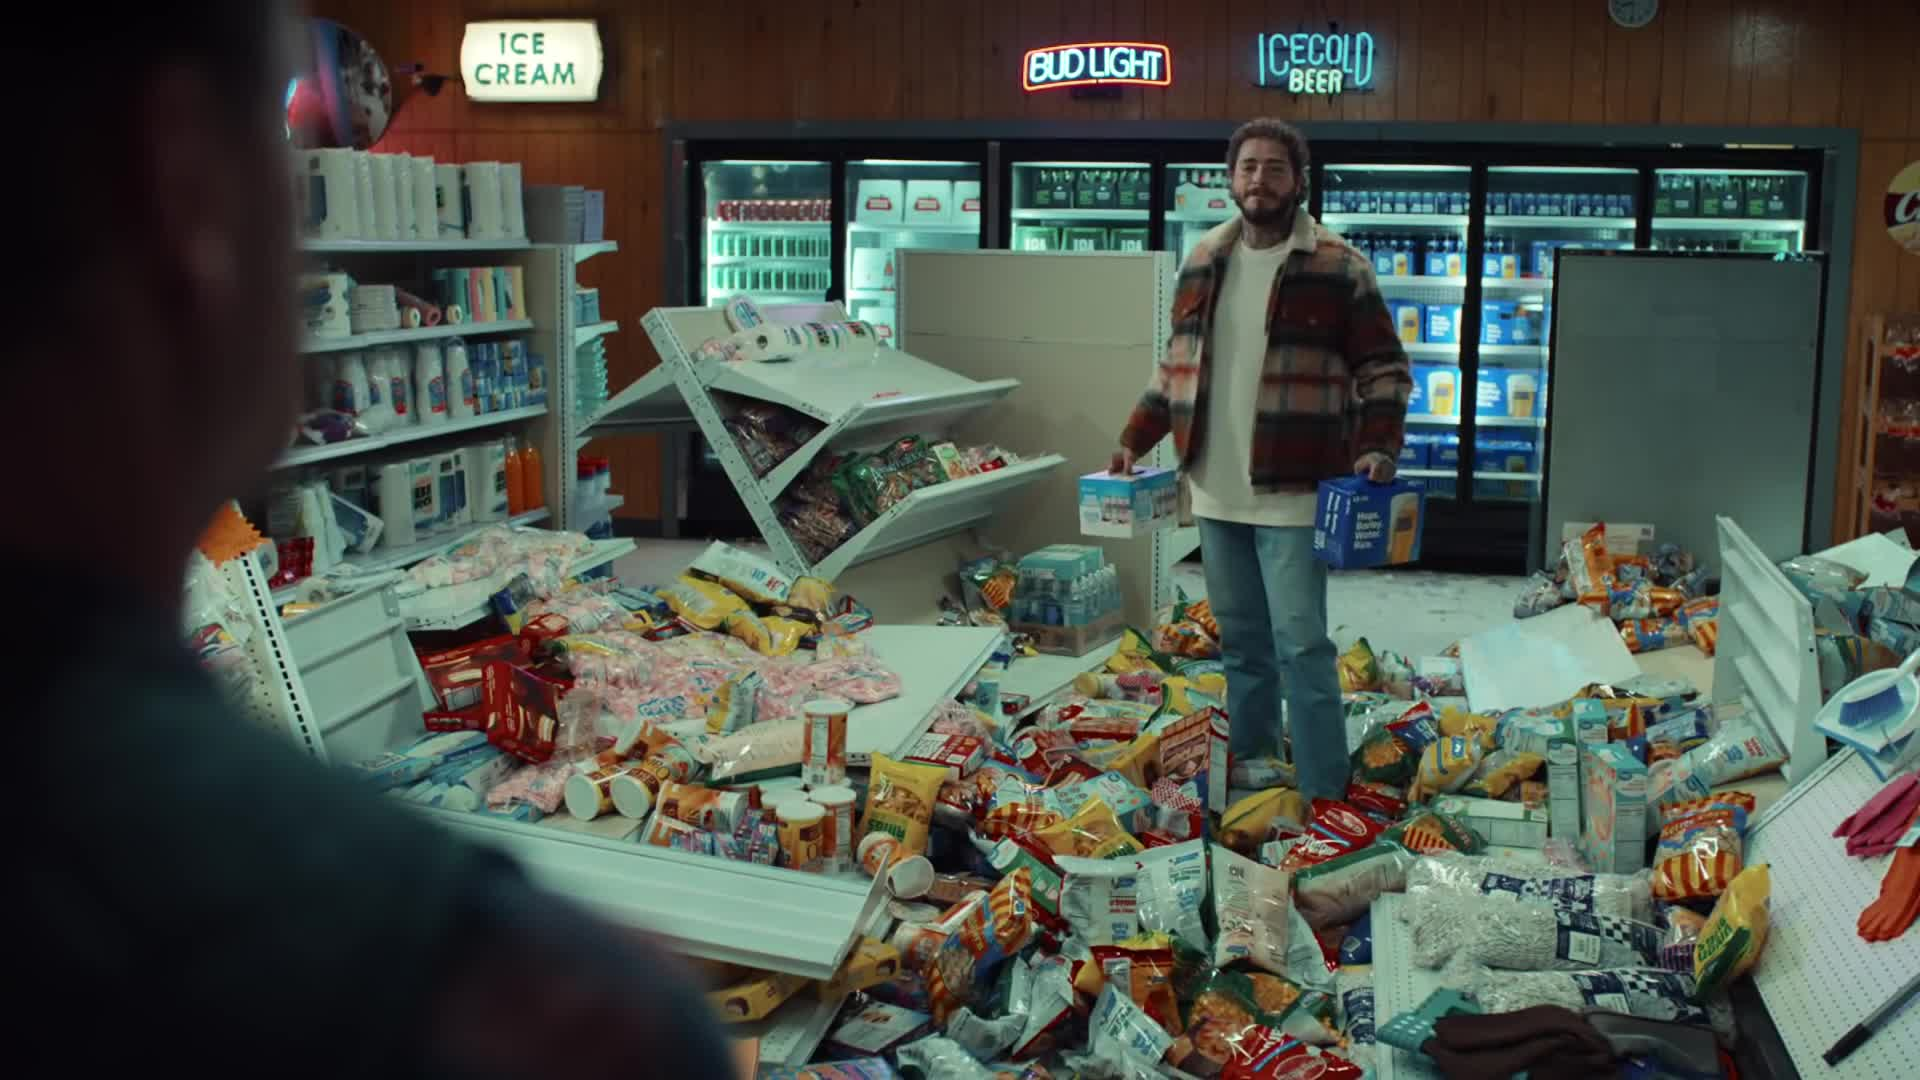 Werbespot, Super Bowl, Super Bowl 2020, Bud Light, Bud Light Seltzer